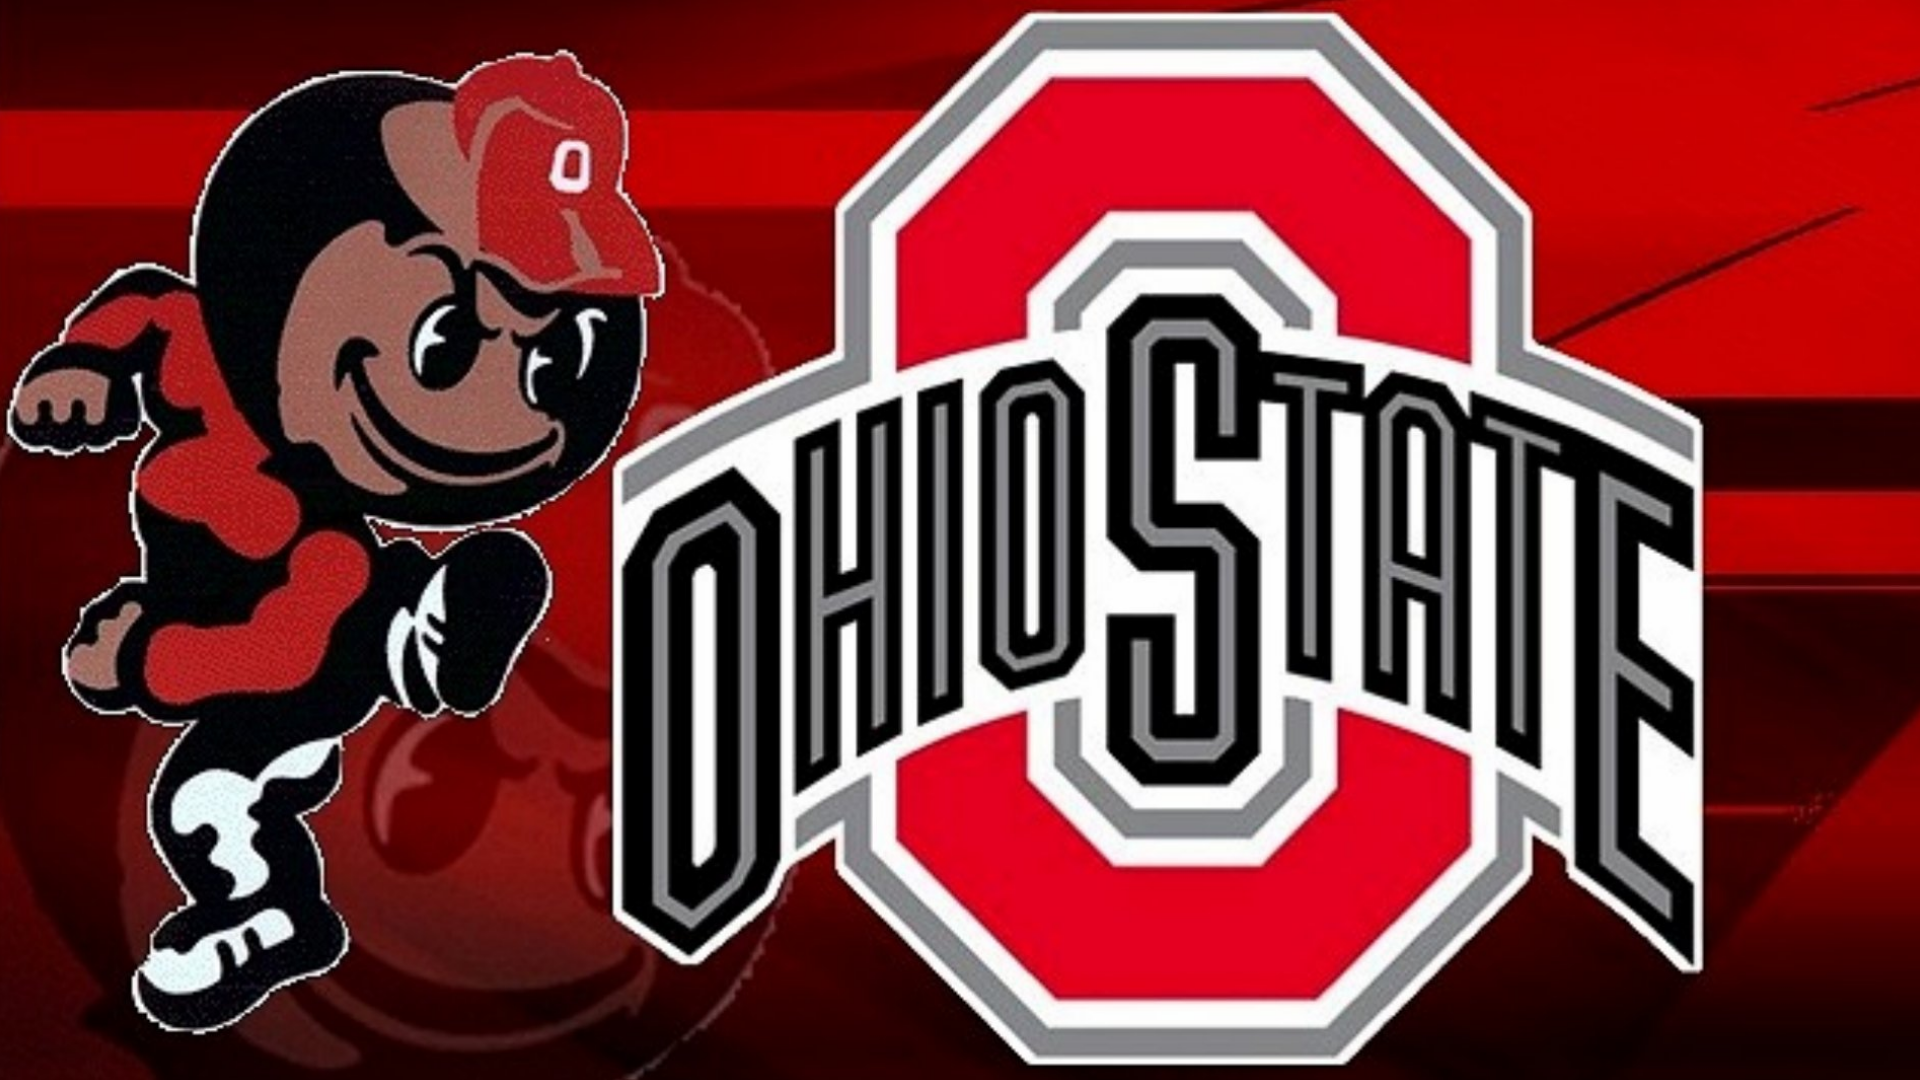 Ohio State Brutus PNG - 70640